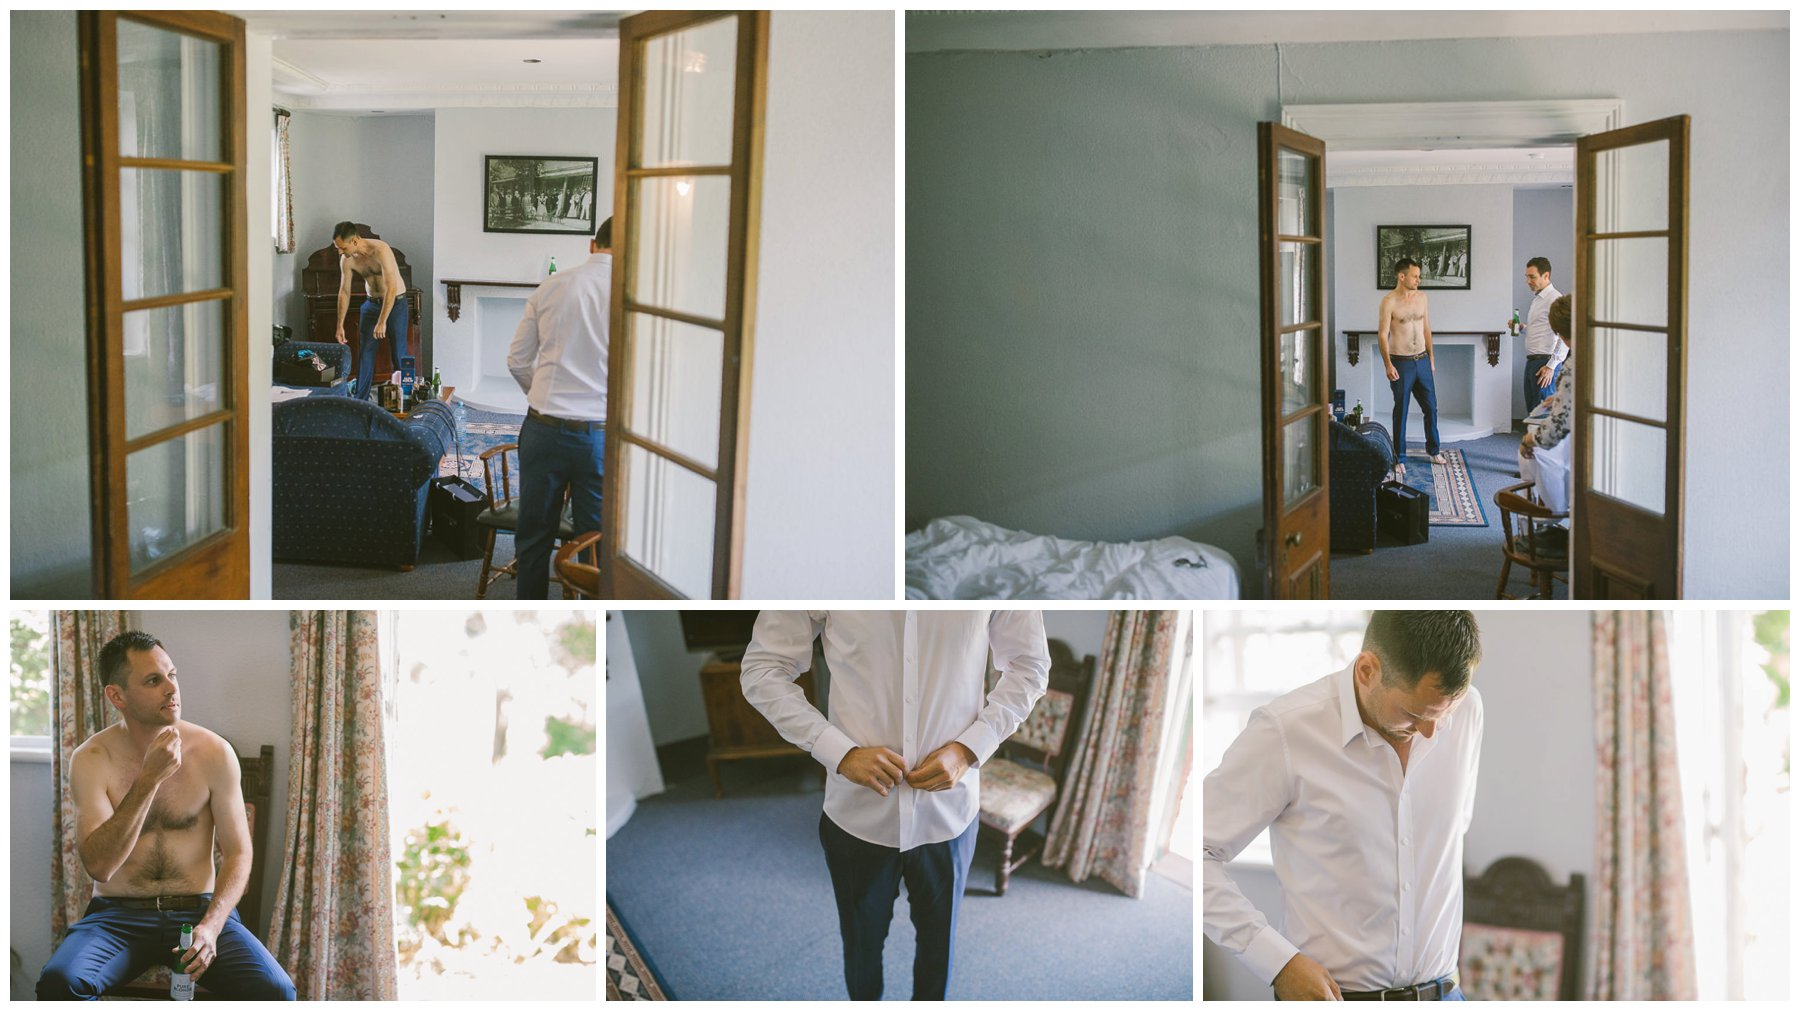 Patrick and Hollie, Coolangatta estate wedding, south coast wedding photographer, Southern Highlands wedding photographer, southern highlands photographer, groomsmen, groom, preparations